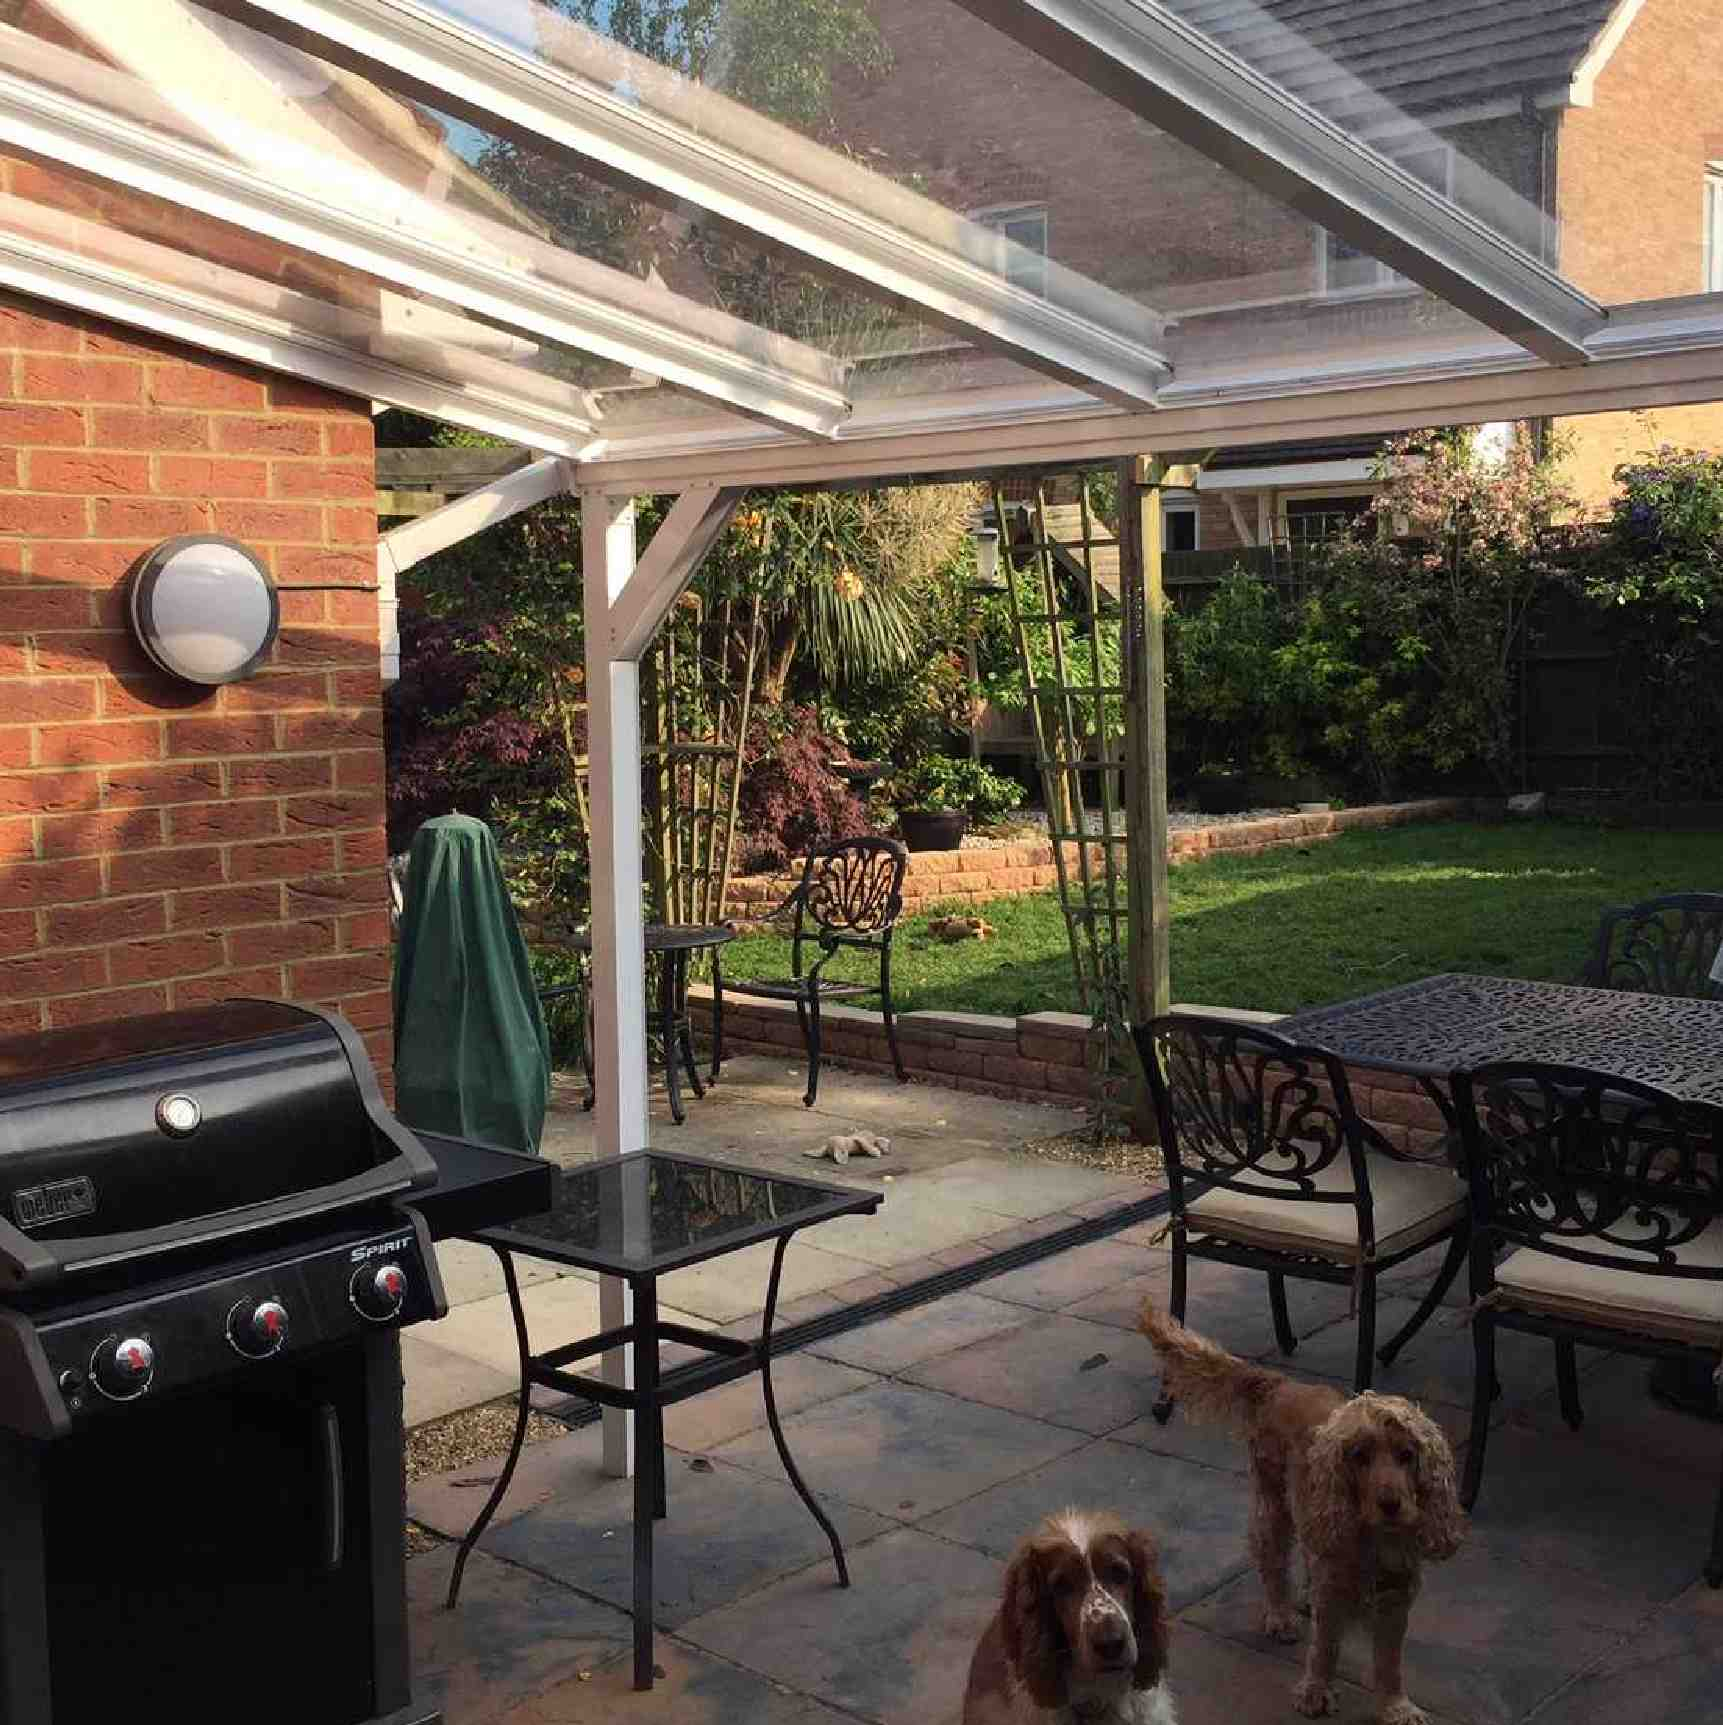 Omega Verandah with 16mm Polycarbonate Glazing - 9.5m (W) x 2.5m (P), (5) Supporting Posts